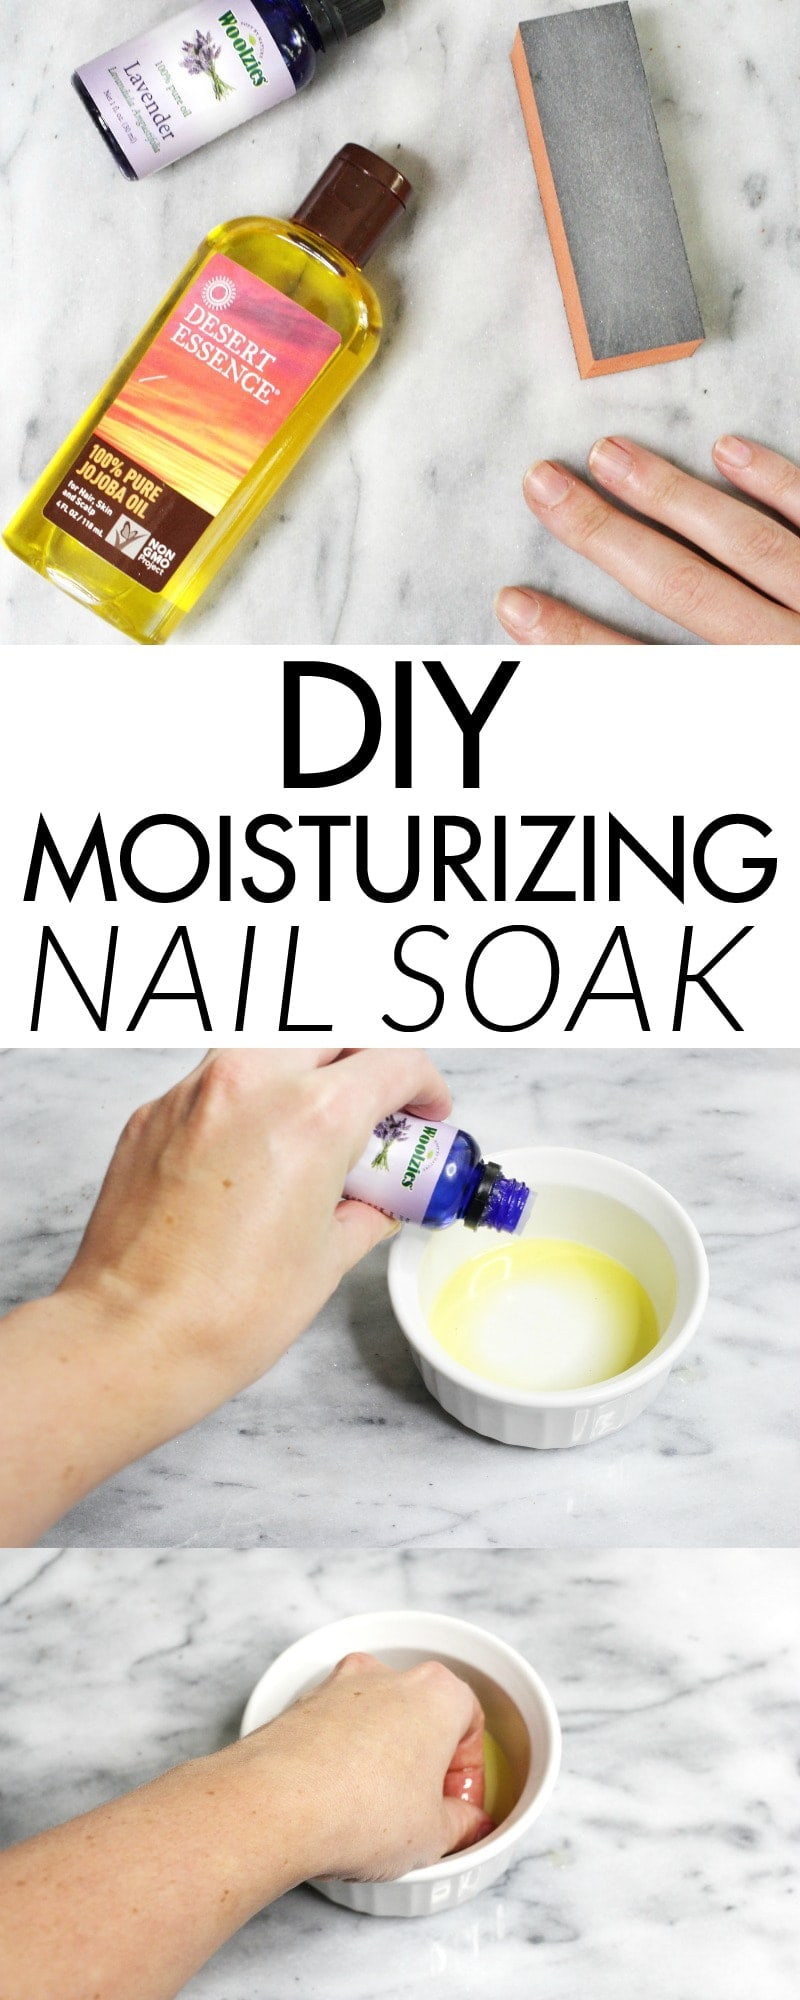 DIY Moisturizing Nail Soak - give your cuticles and broken nails some therapy. Super easy. My nails and cuticles already look better!